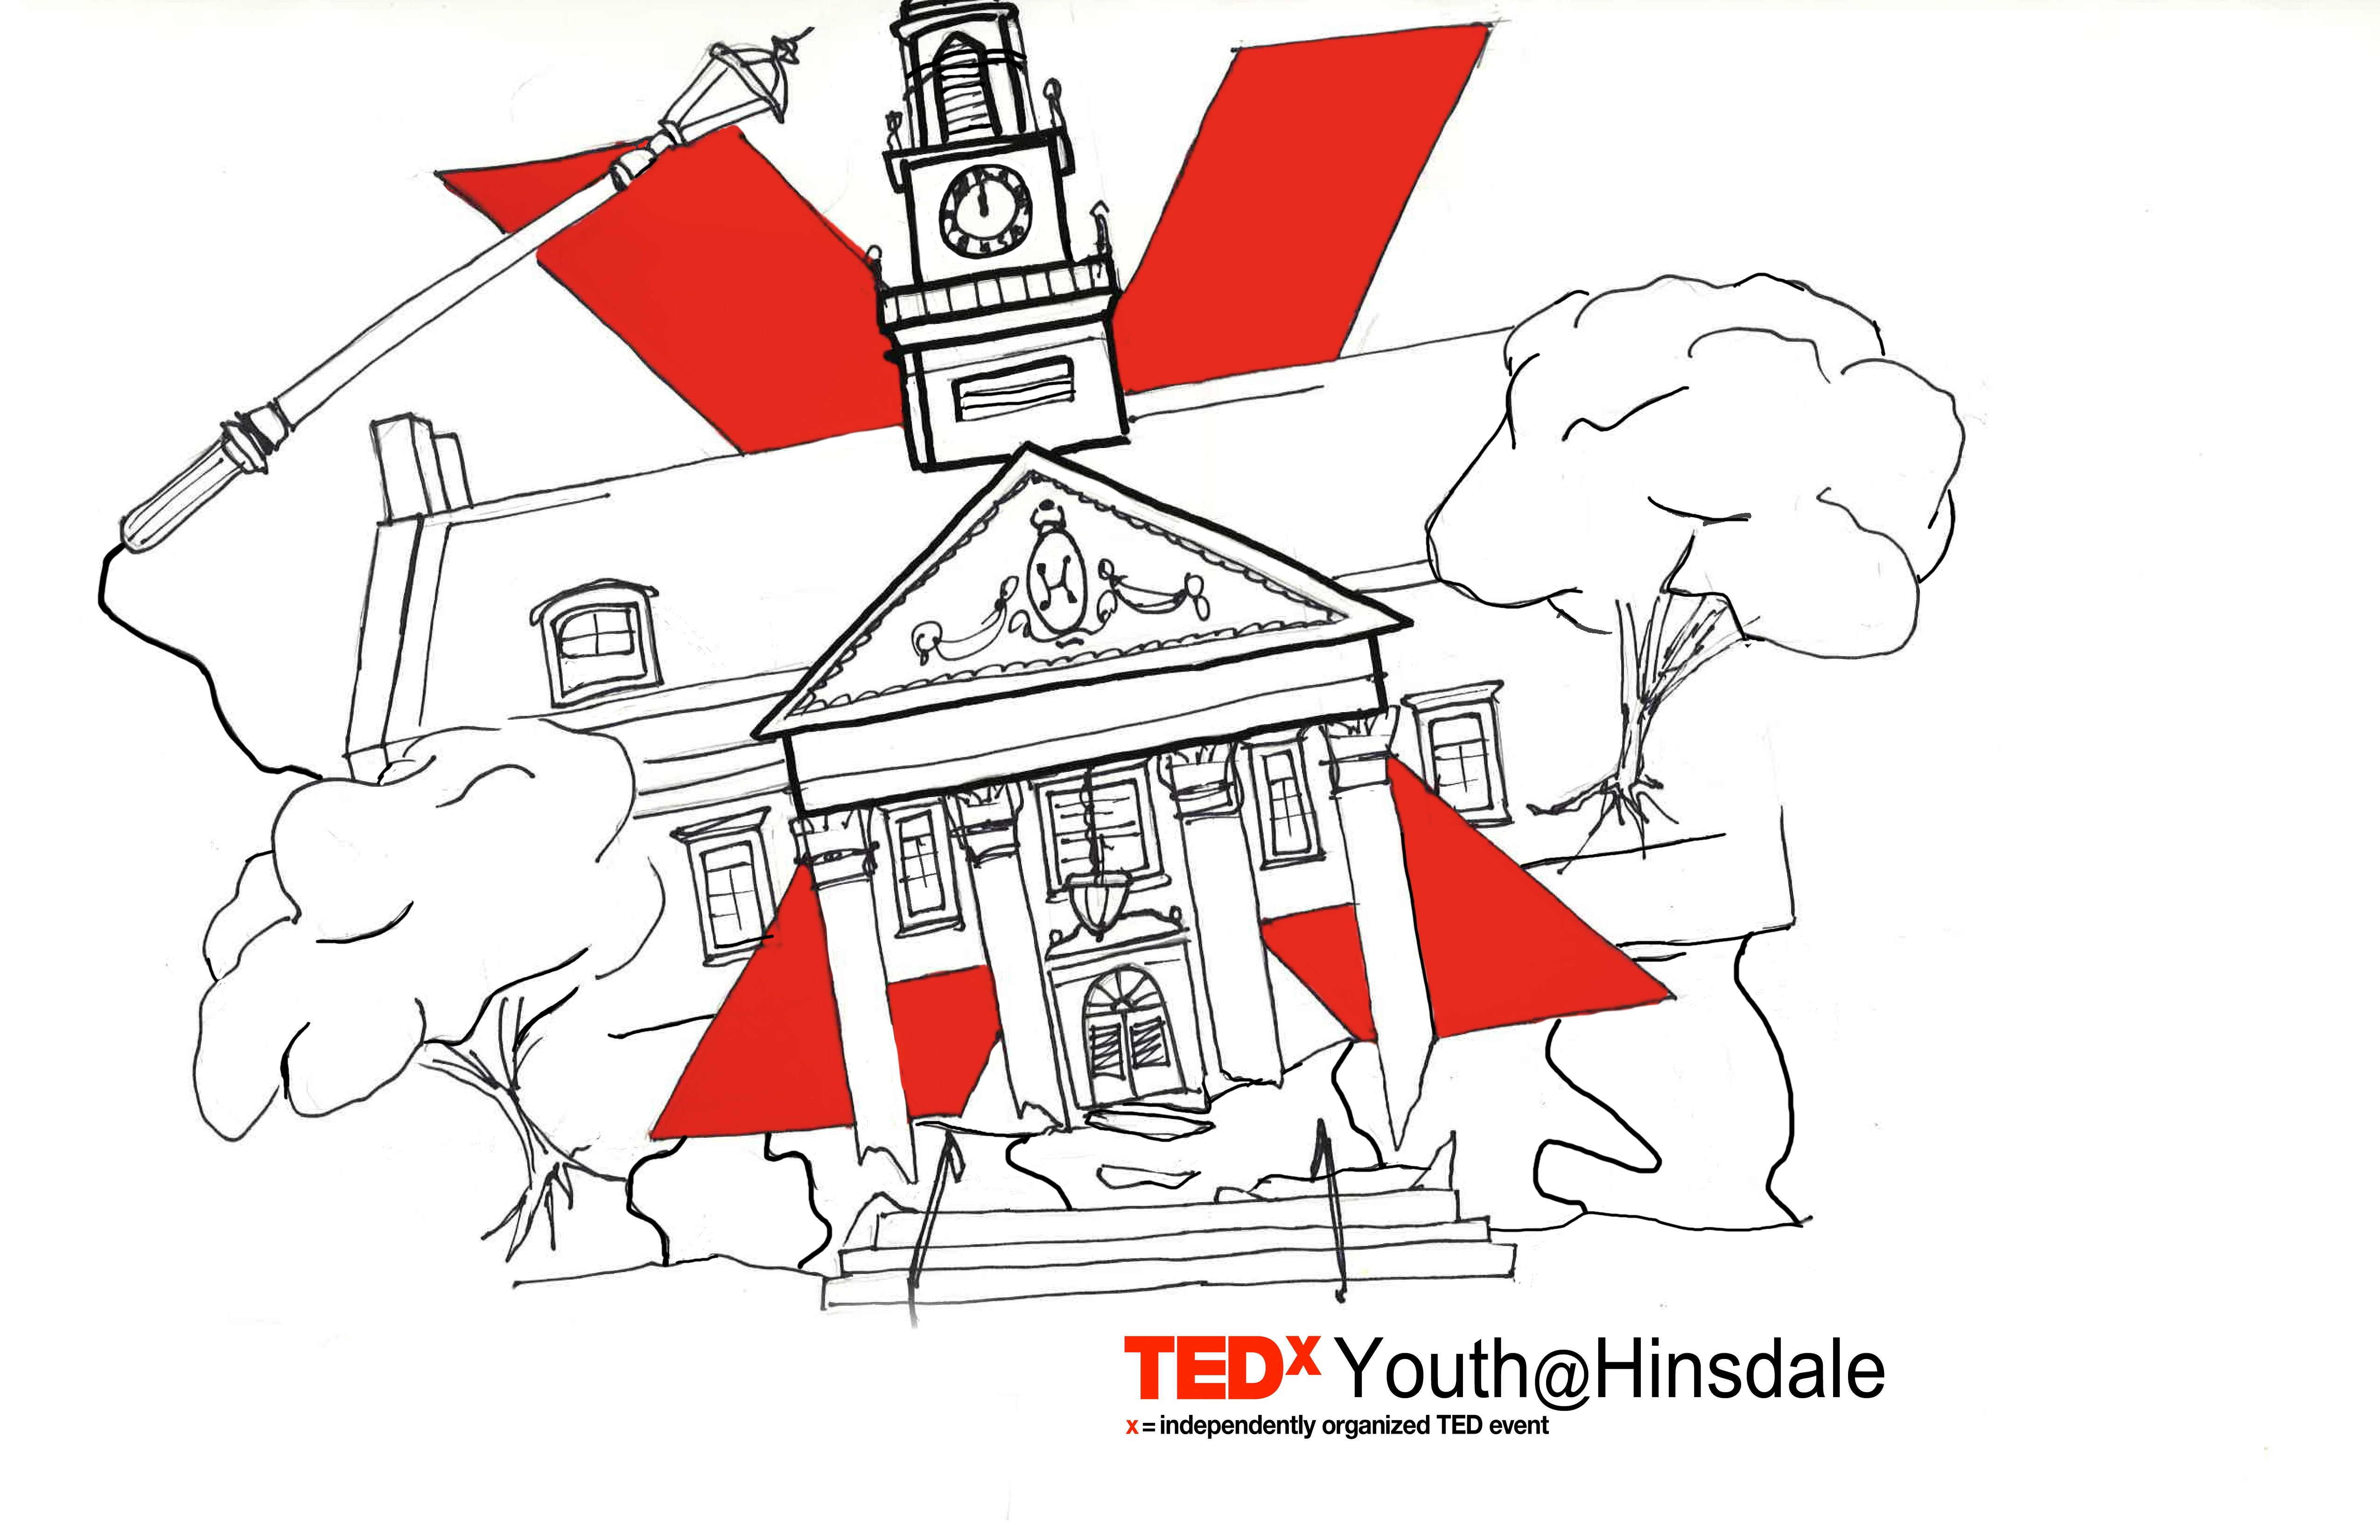 TEDxYouth@Hinsdale